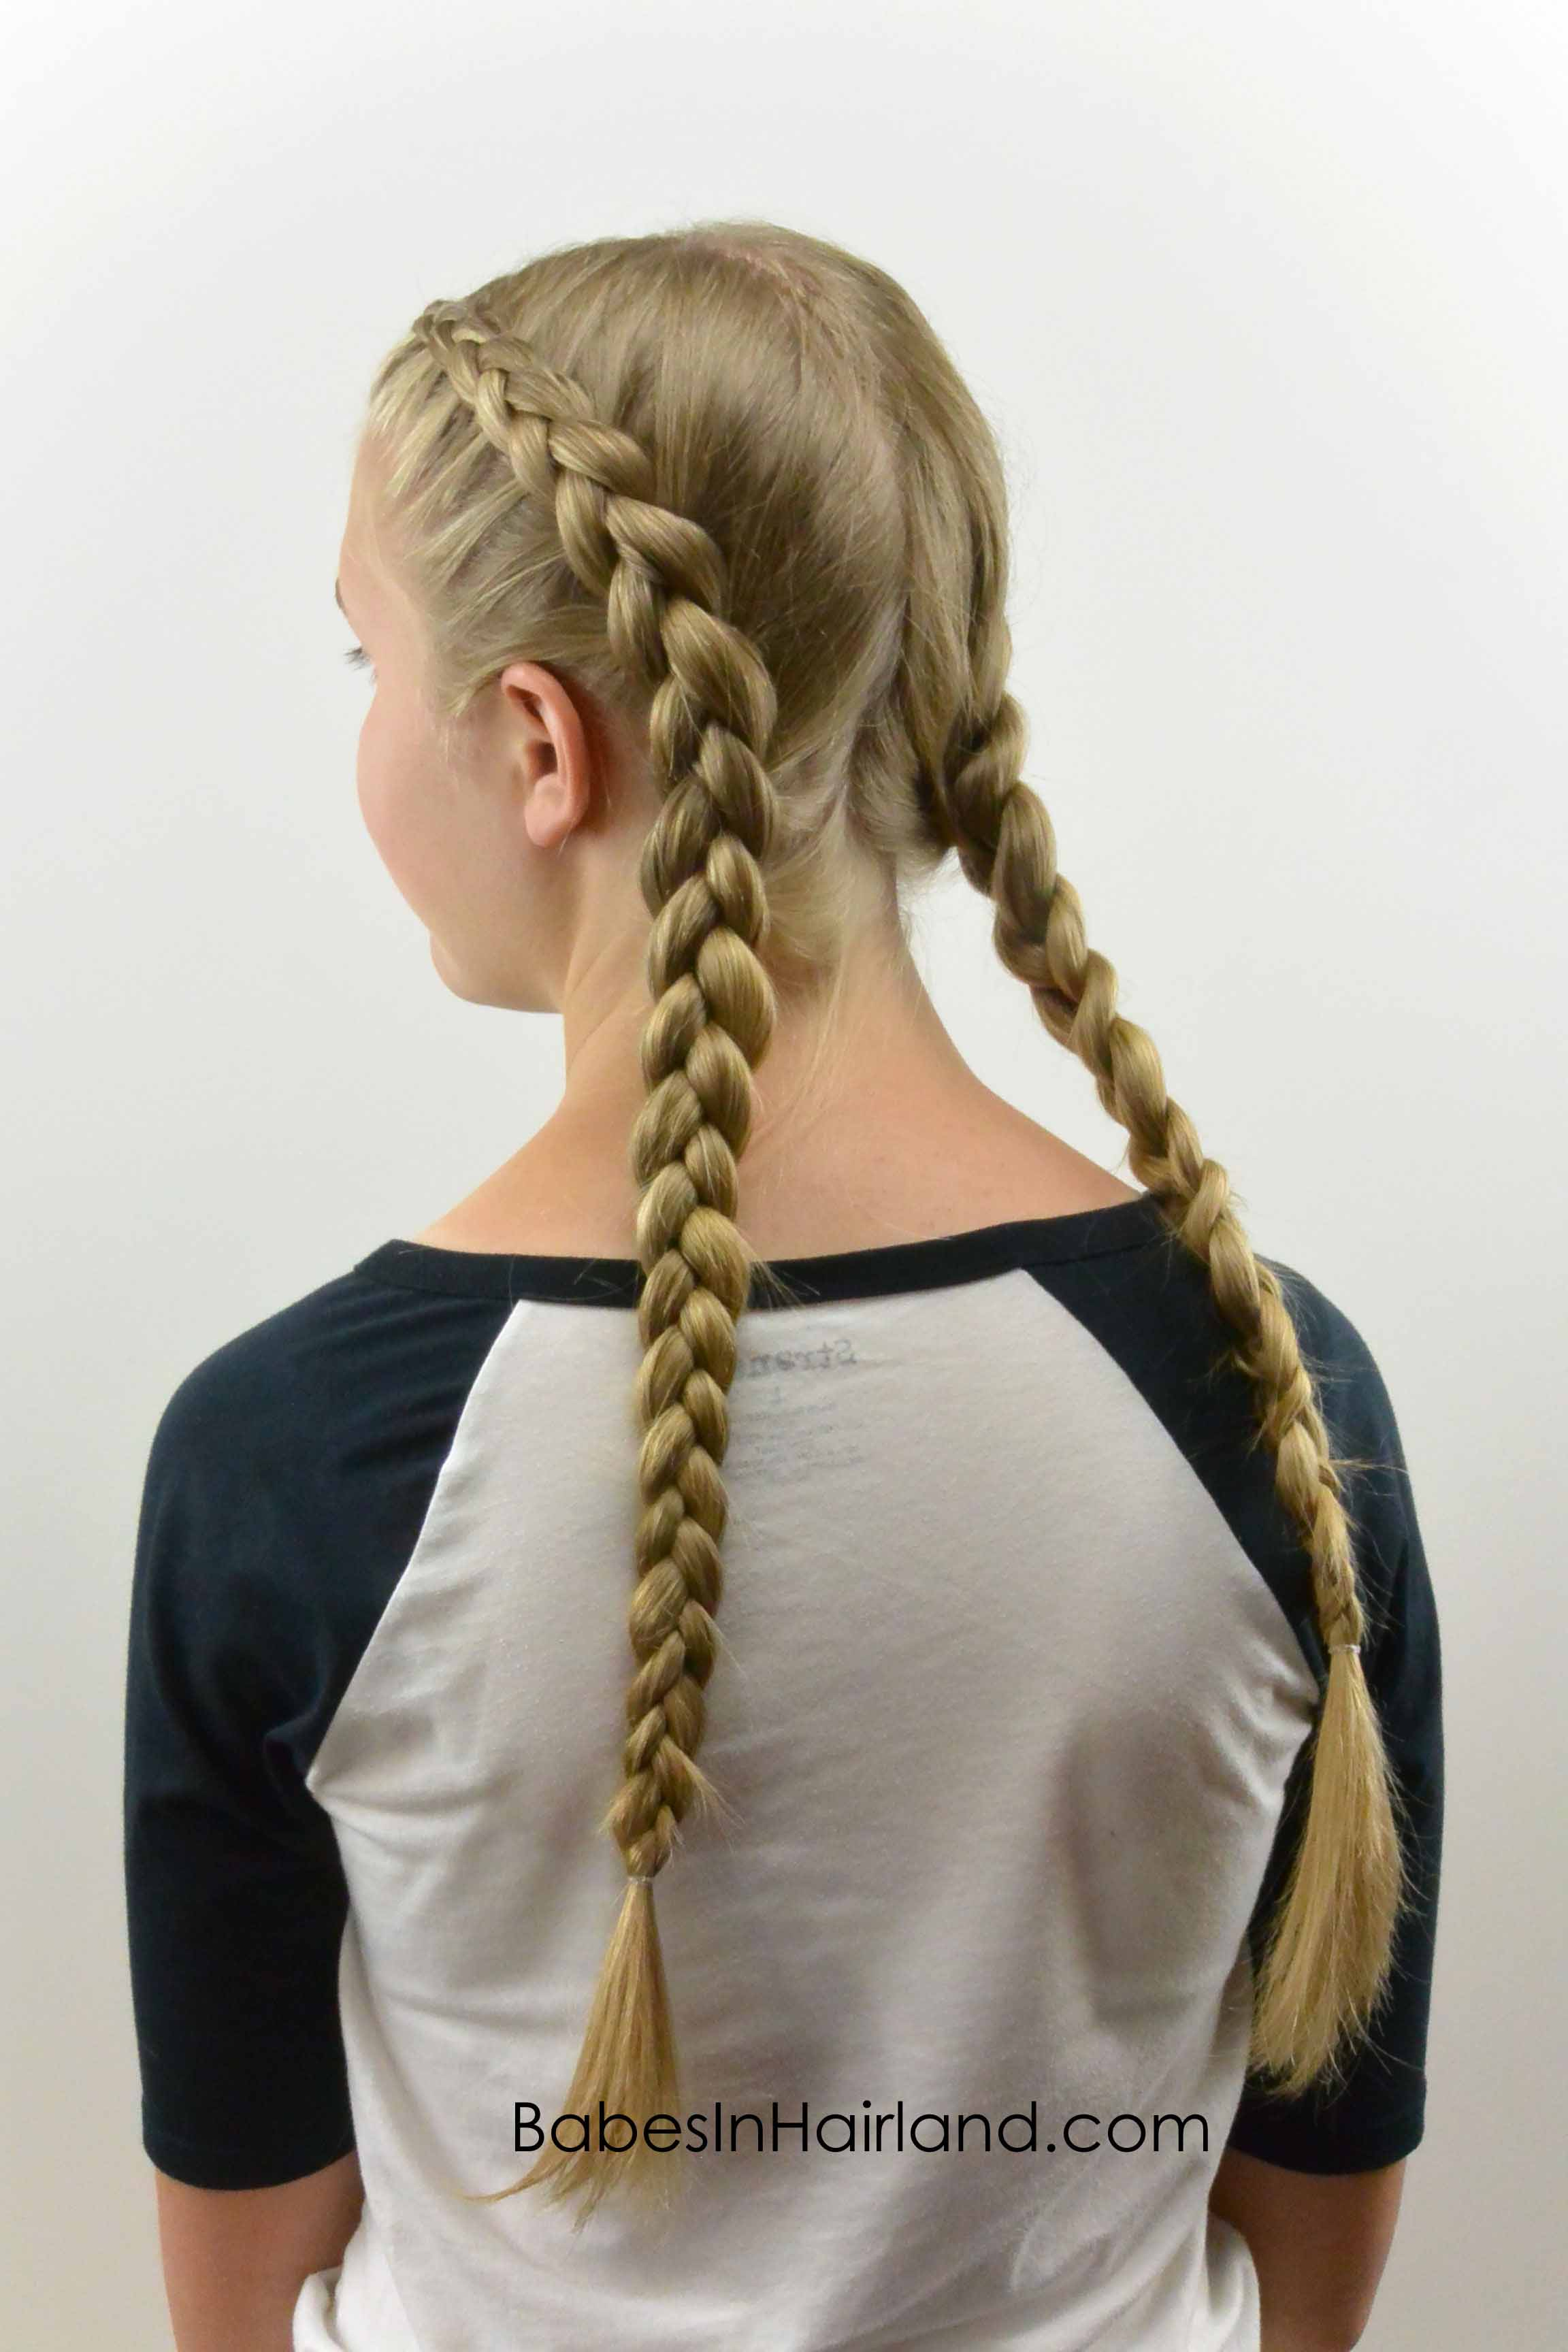 How To: Tight Dutch Braids On Yourself From Babesinhairland #dutchbraid  #frenchbraid